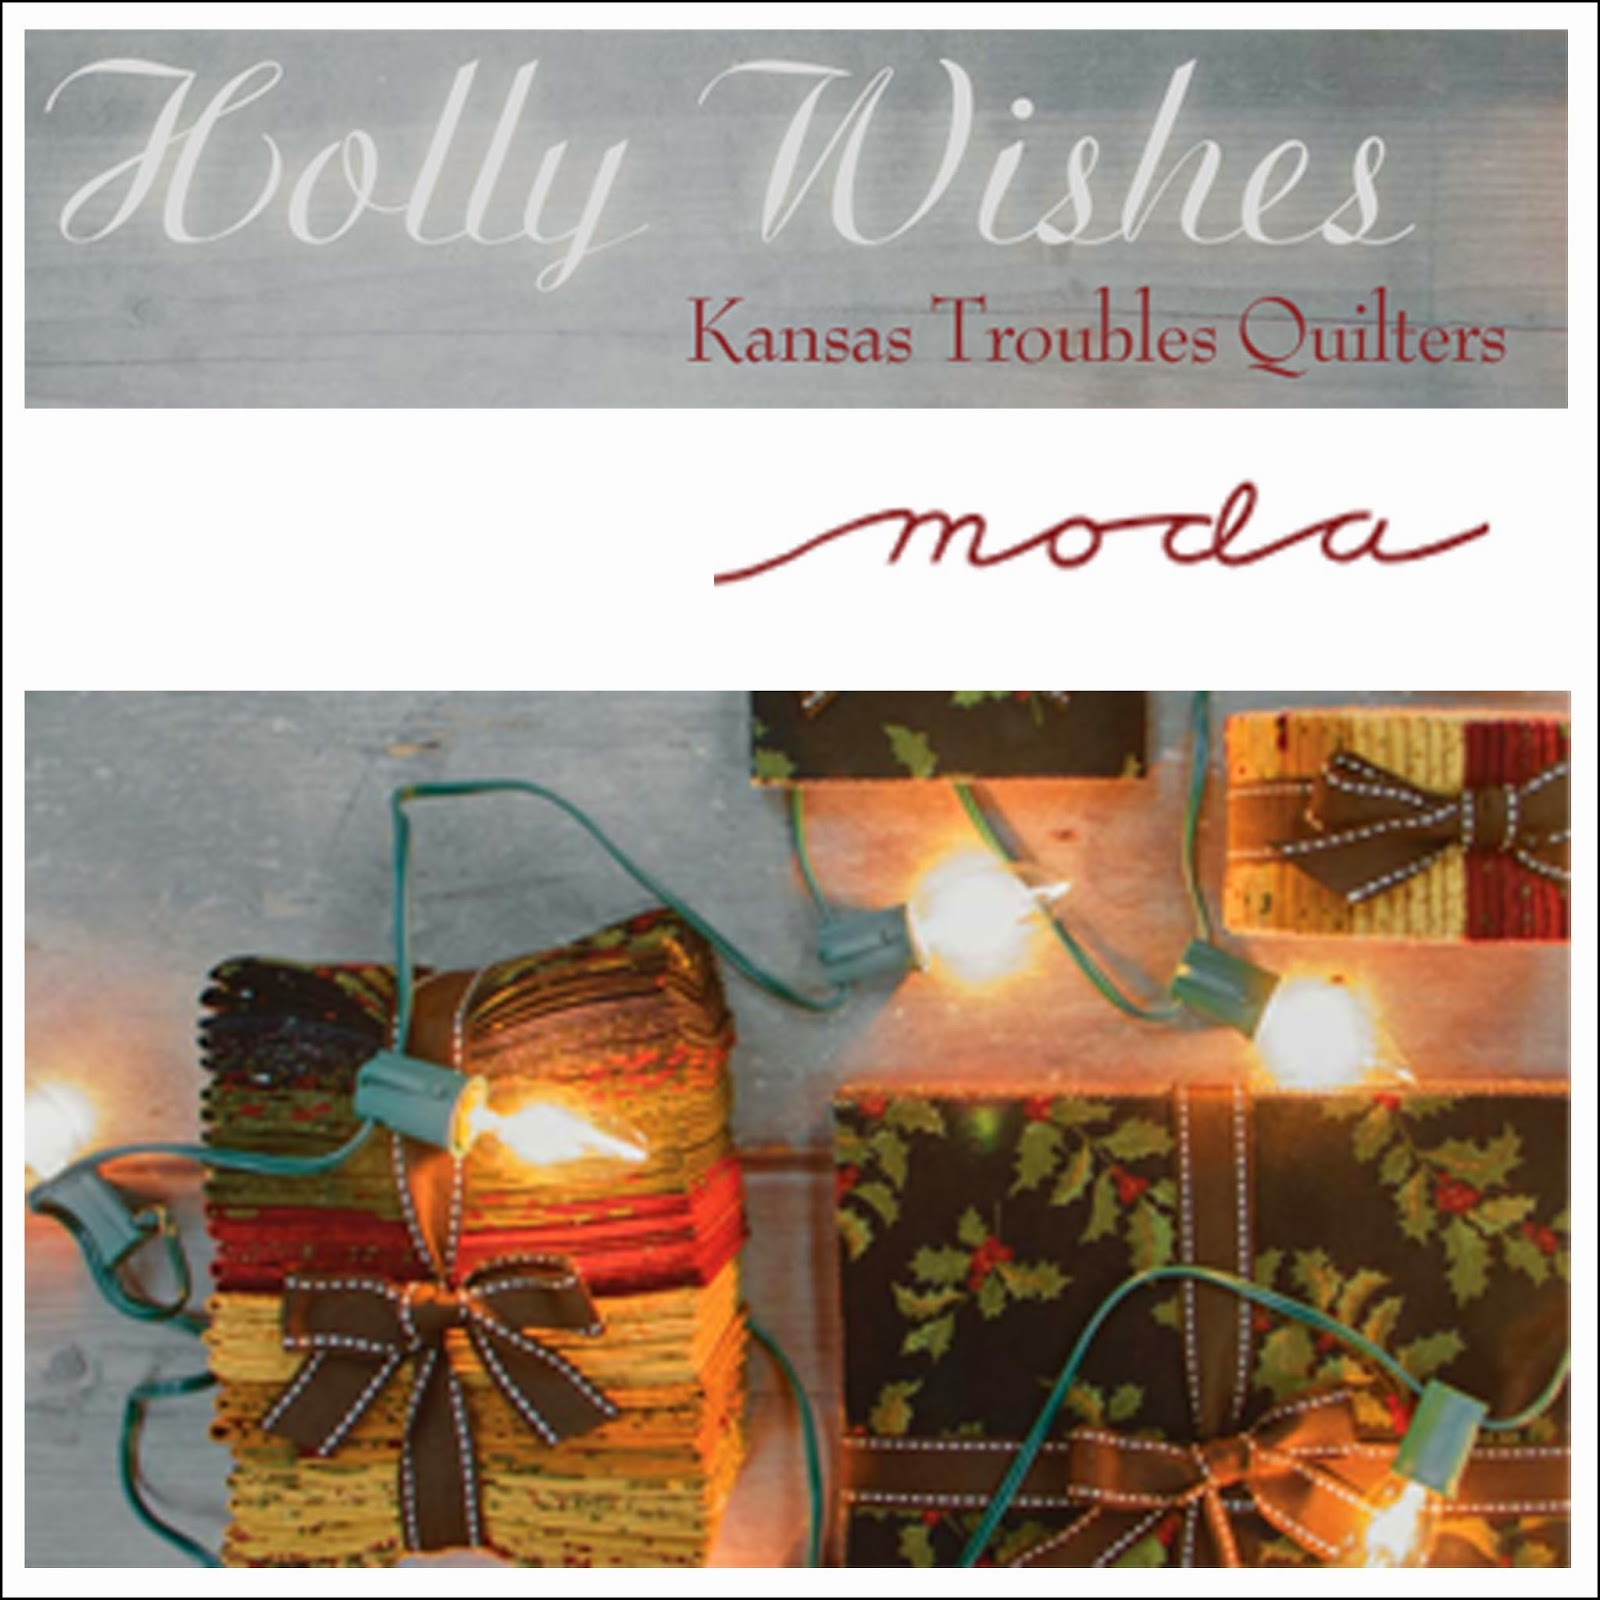 Moda HOLLY WISHES Christmas Quilt Fabric by Kansas Troubles Quilters